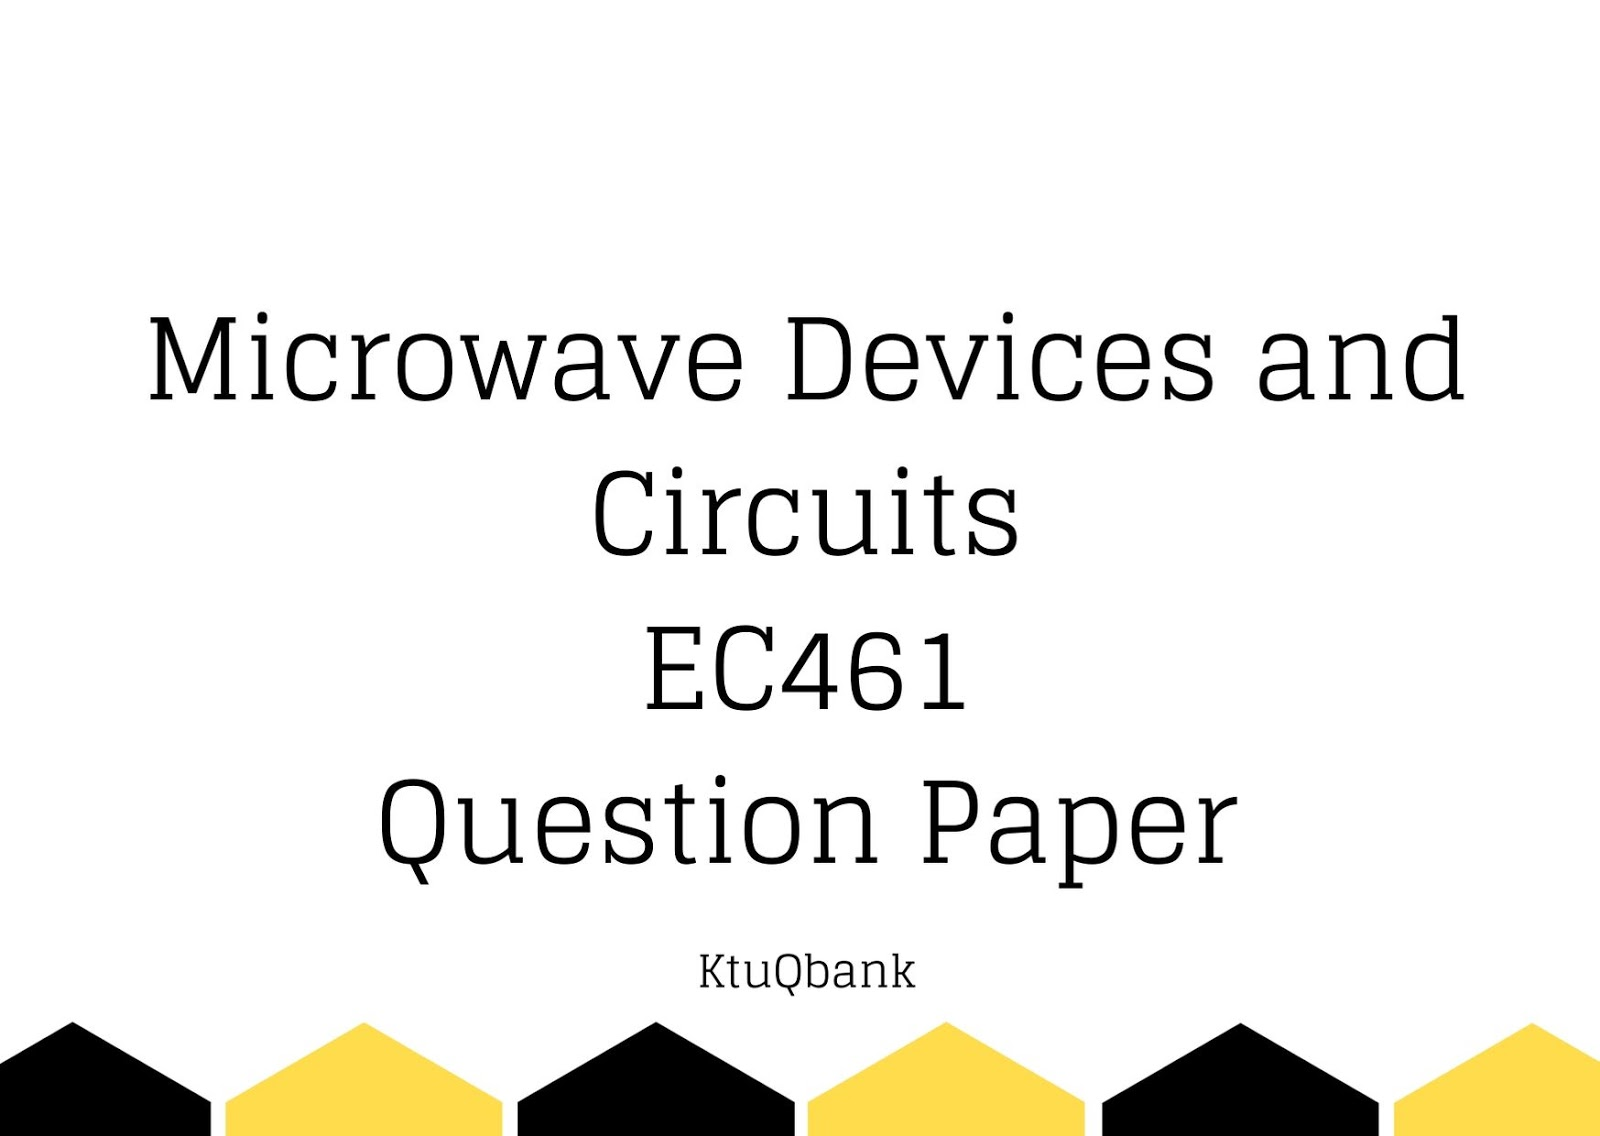 Microwave Devices and Circuits | EC461 | Question Papers (2015 batch)